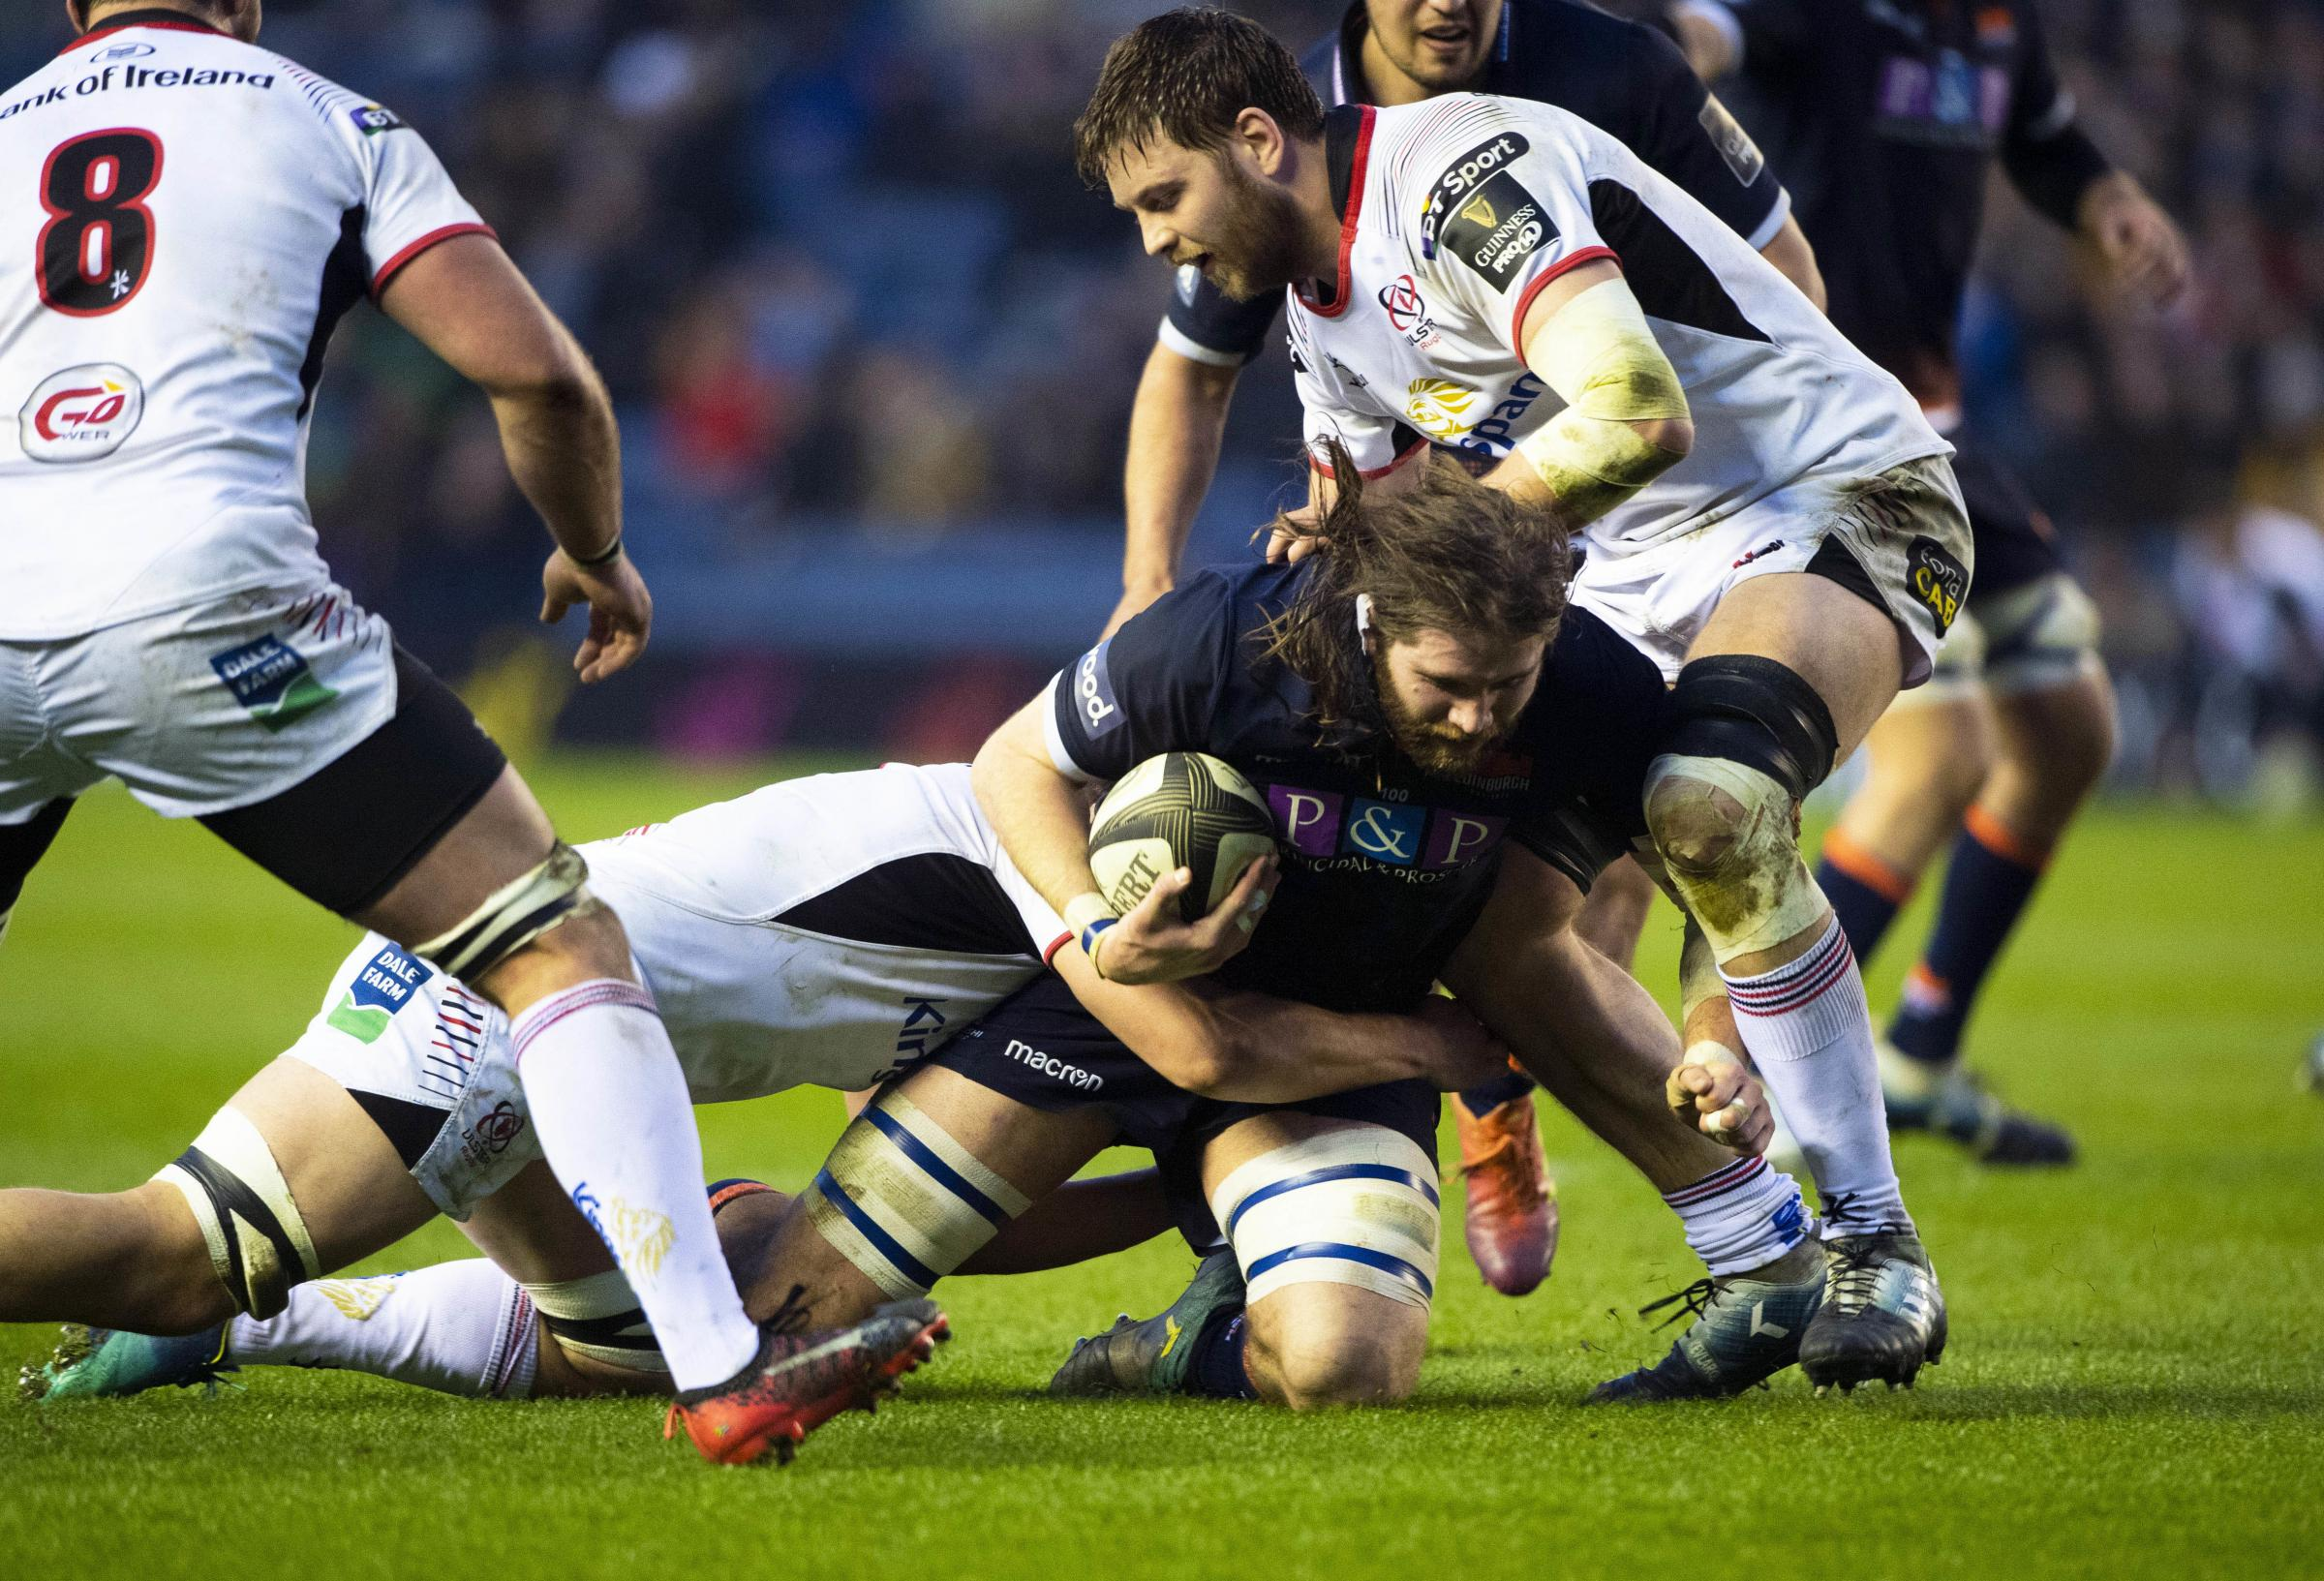 Edinburgh's Ben Toolis tries to drive forward under pressure from the Ulster defence